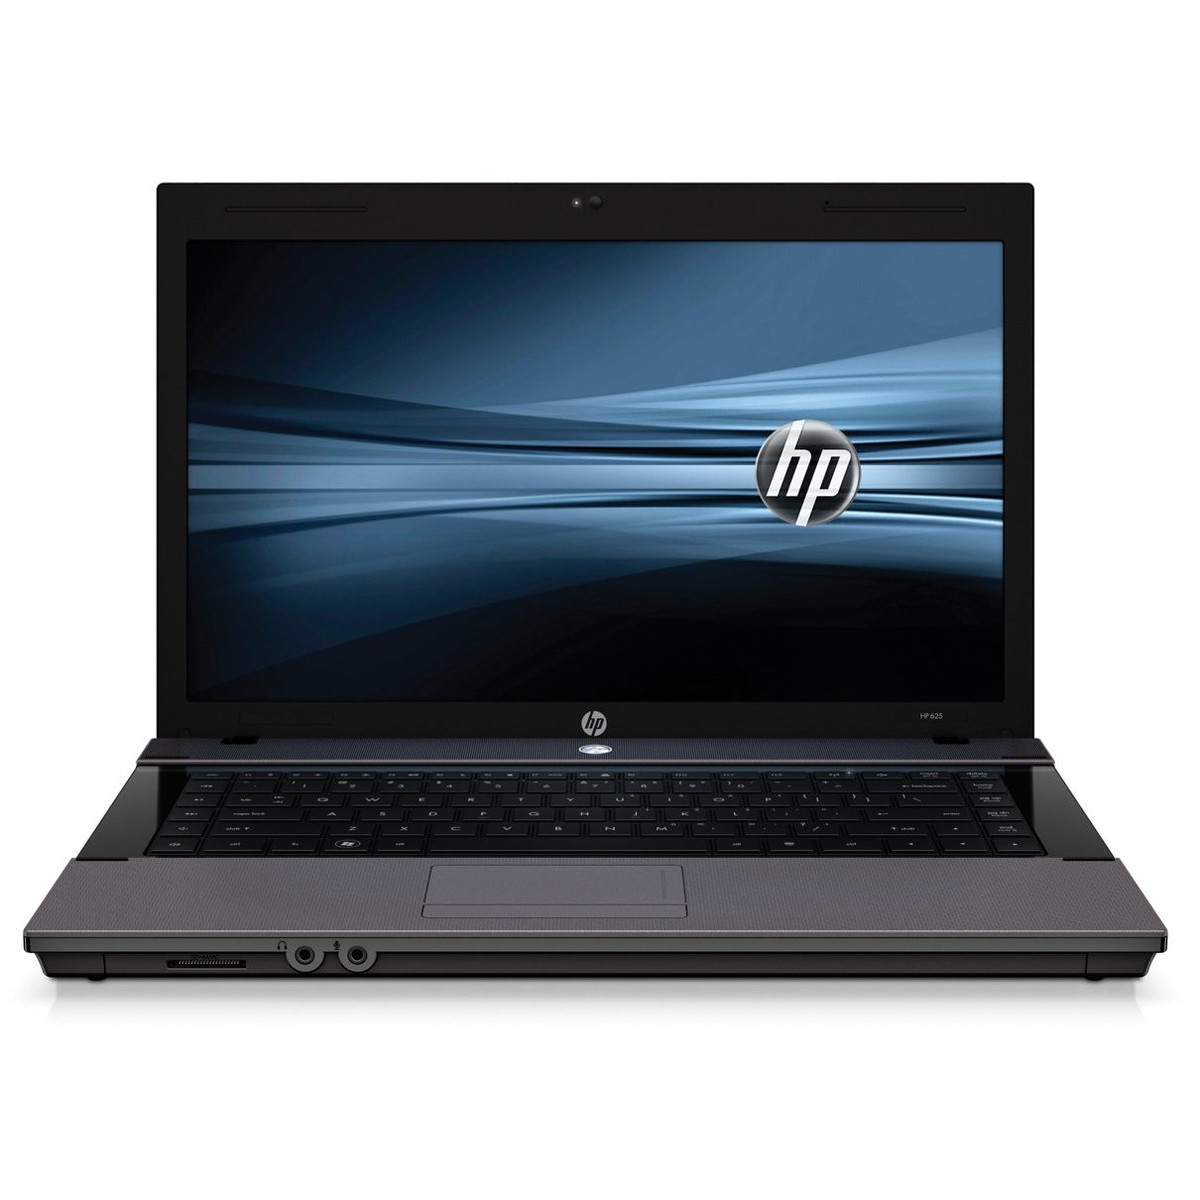 HP 625 15inch Notebook AMD Dual Core 2.3GHz 6GB RAM 320GB HDD Windows 7 Pro